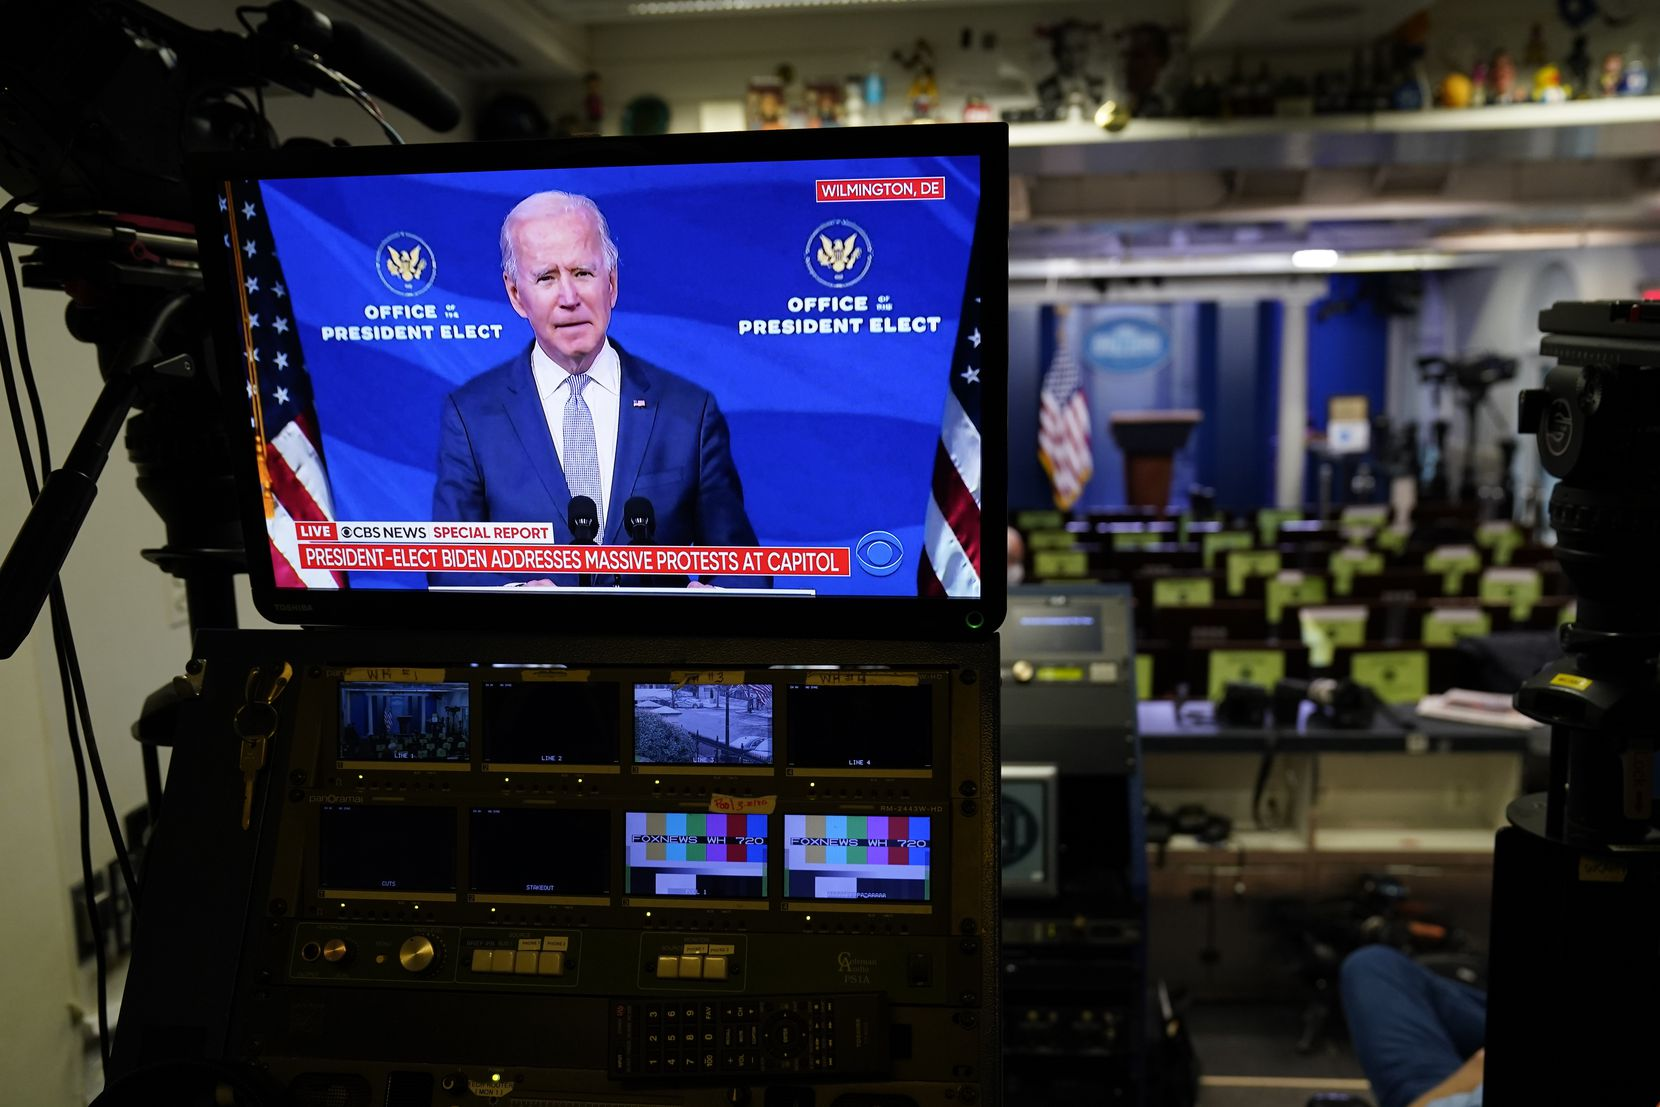 A screen in the briefing room of the White House in Washington displays a video of President-elect Joe Biden speaking in Wilmington, Del., Wednesday, Jan. 6, 2021. (AP Photo/Evan Vucci)